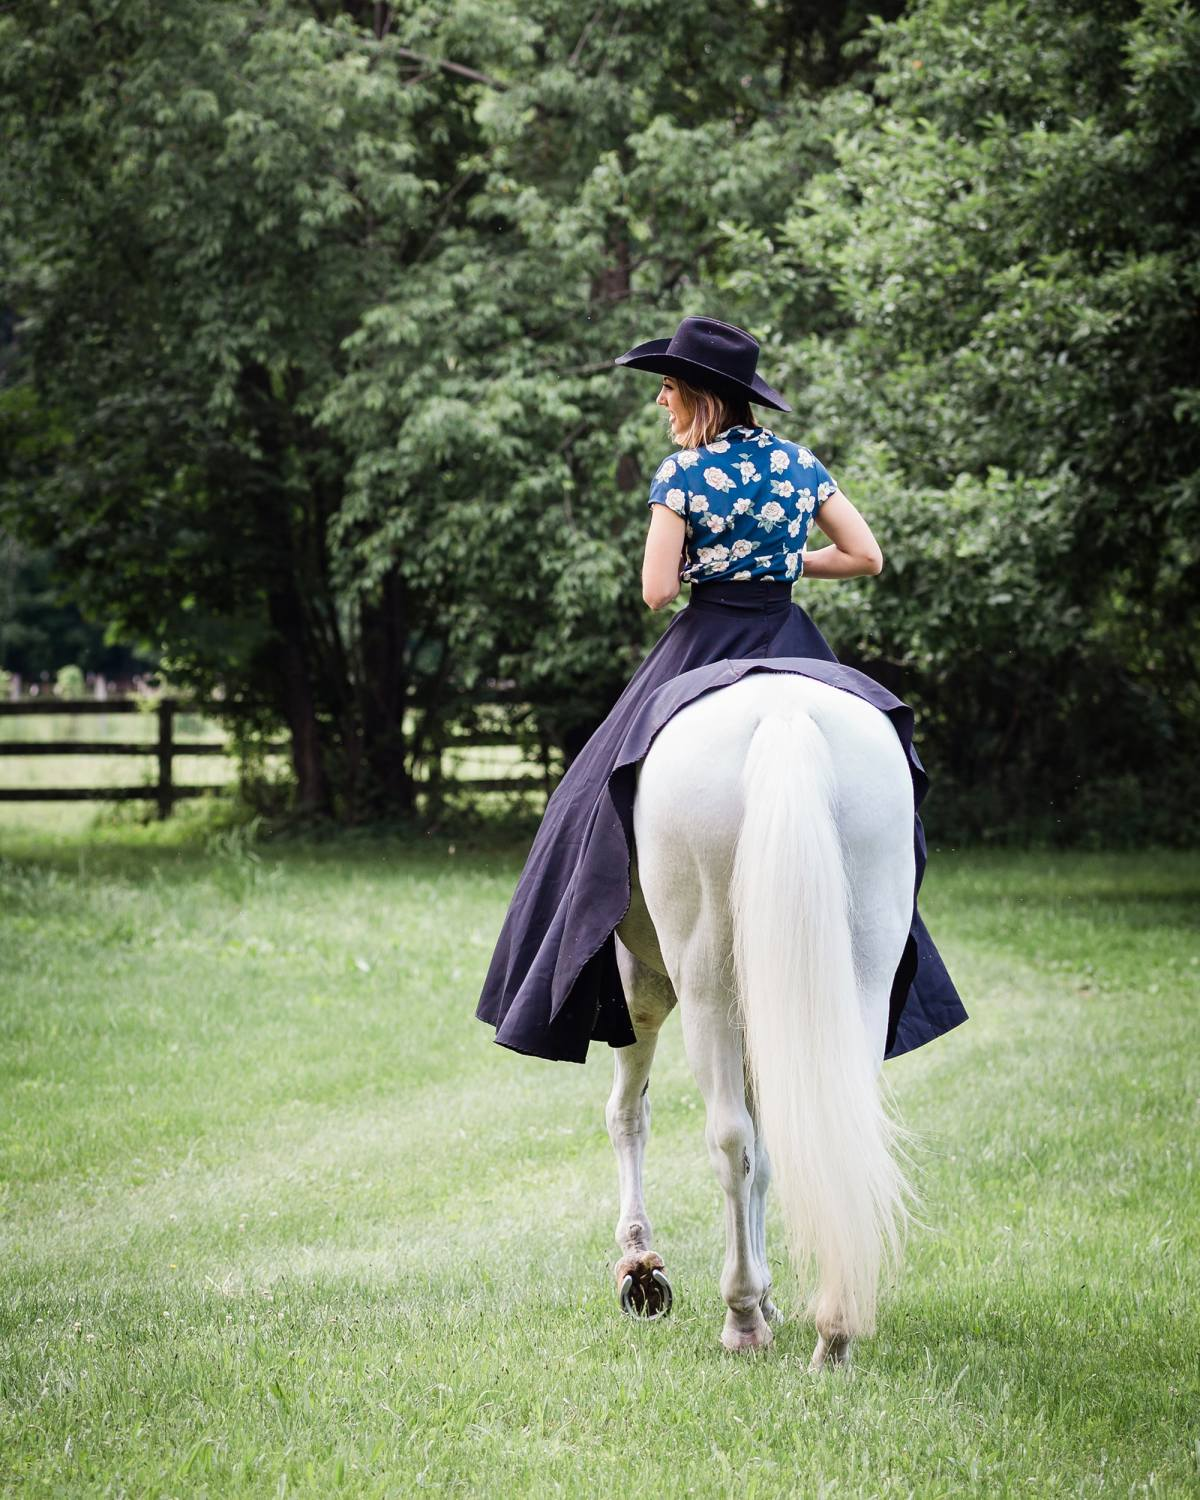 young woman riding white a horse away from camera